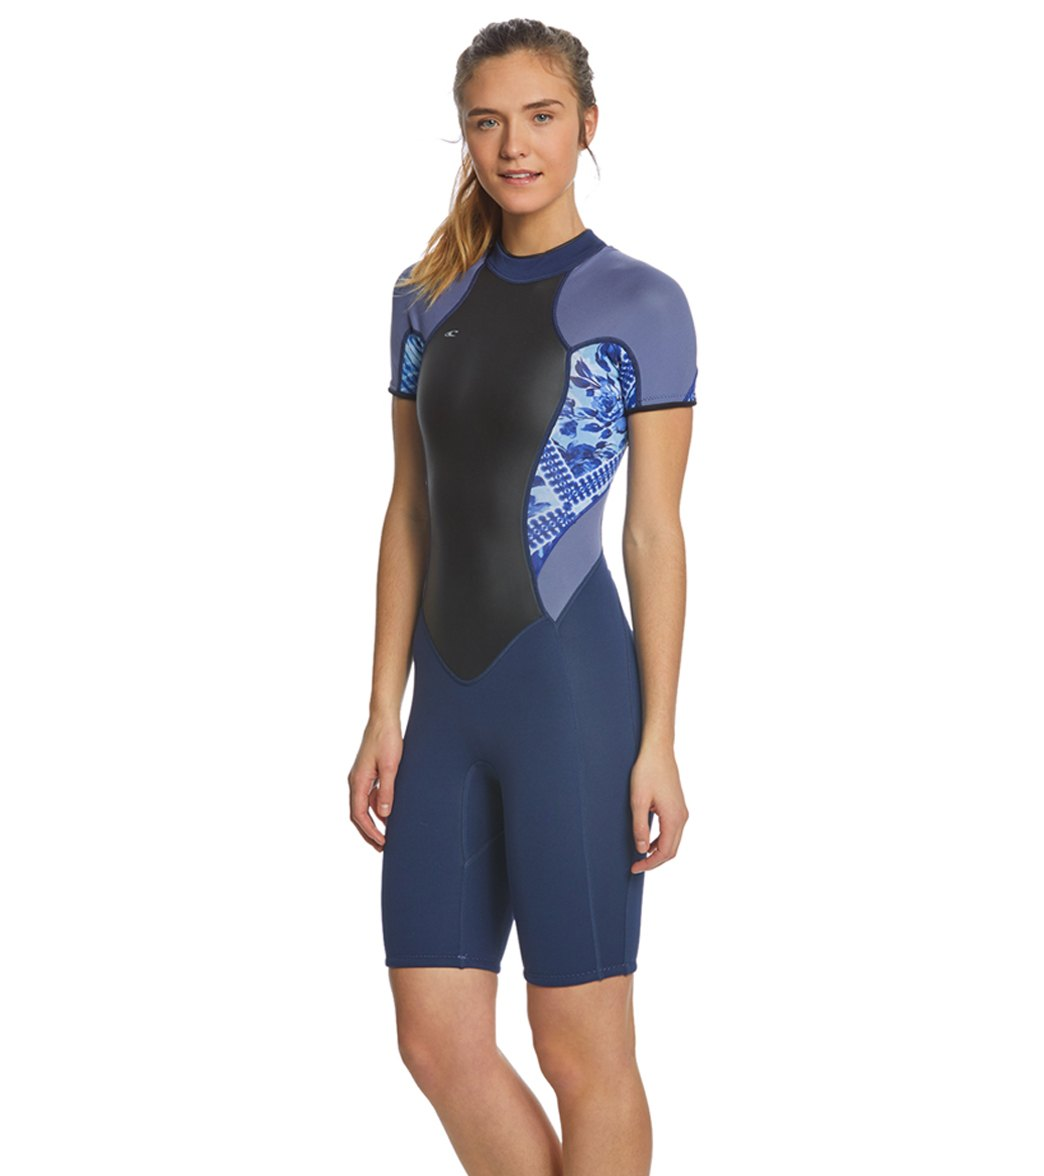 O Neill Women s 2 1MM Bahia Short Sleeve Springsuit Wetsuit at ... ebf2efd51